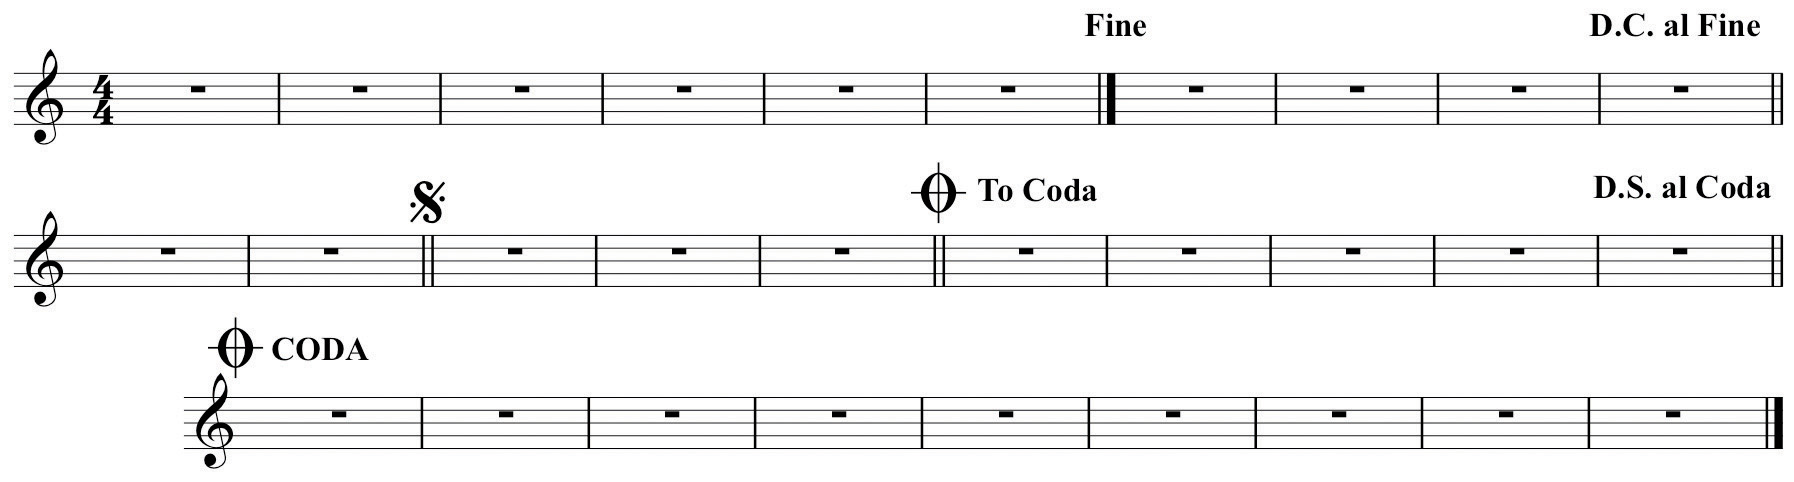 Image Result For Music Theory Key Of E